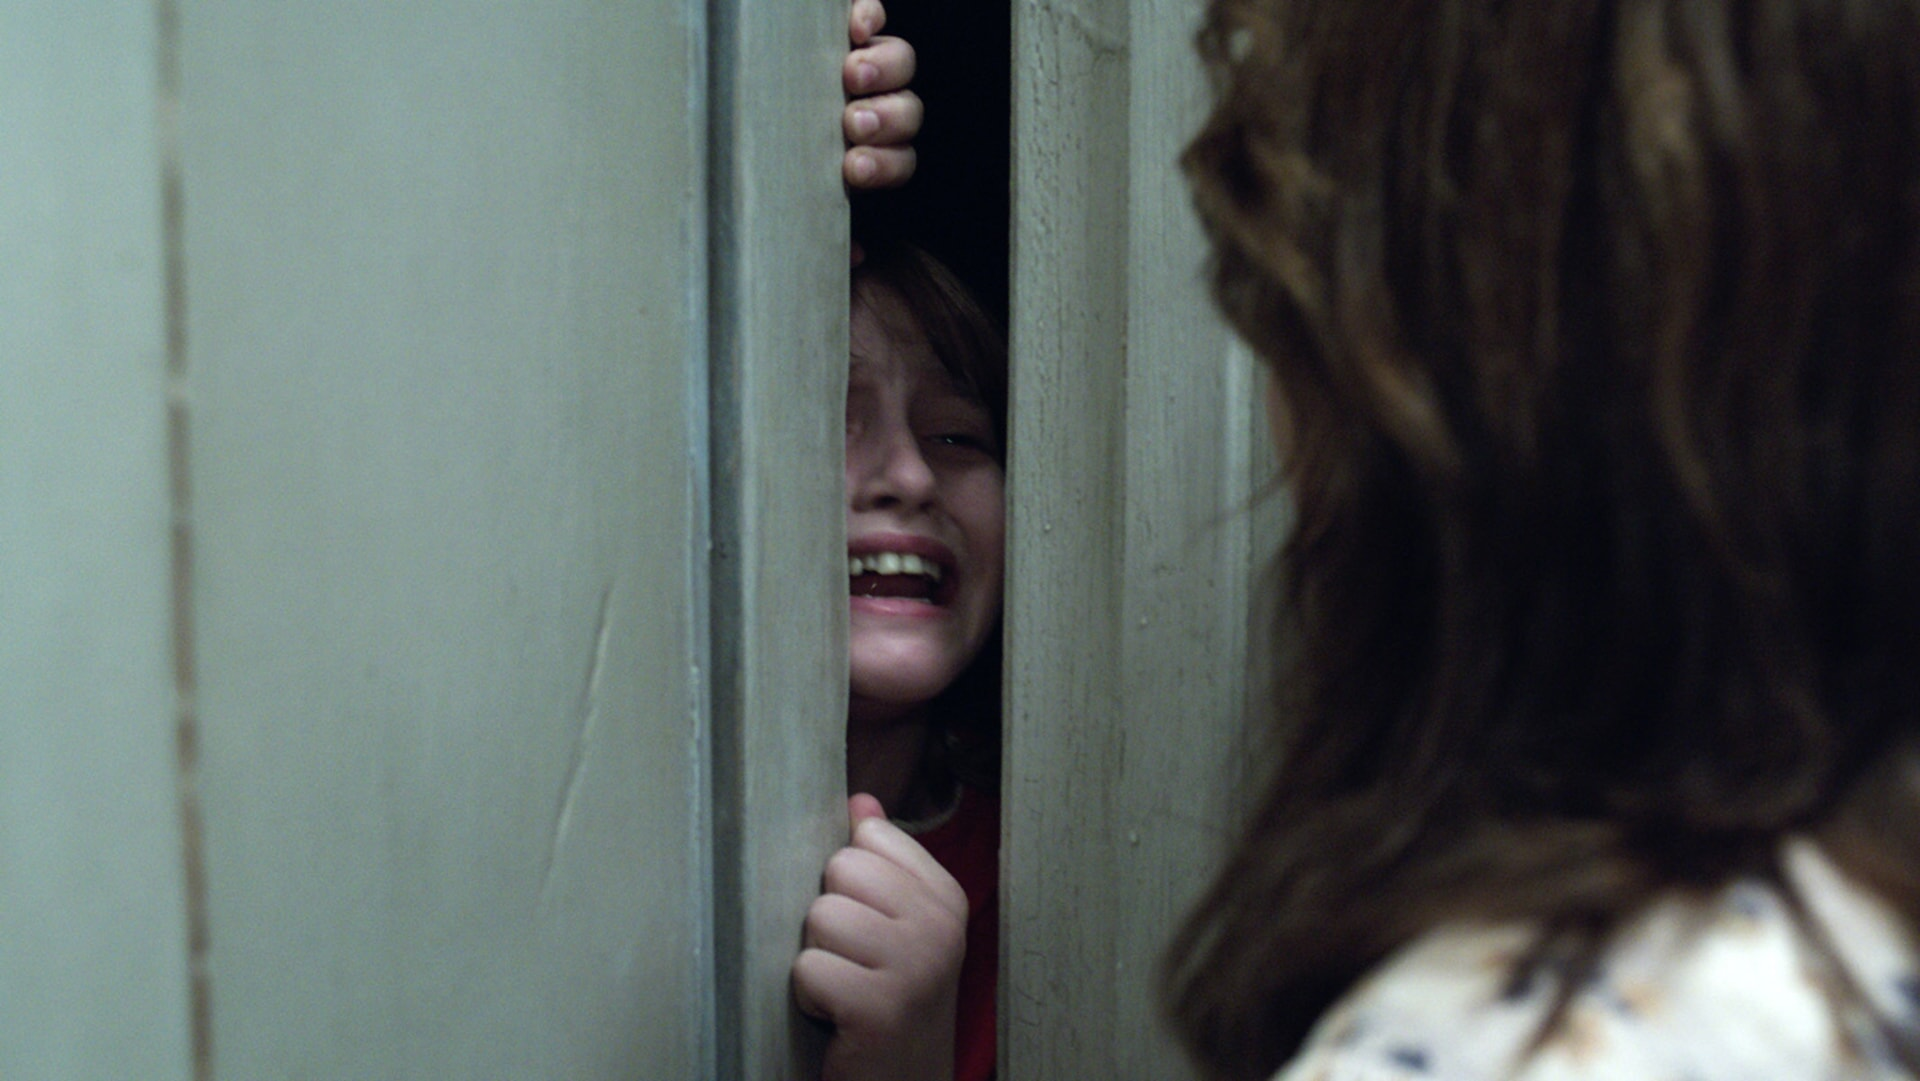 MADISON WOLFE as Janet Hodgson crying out through a crack in a door